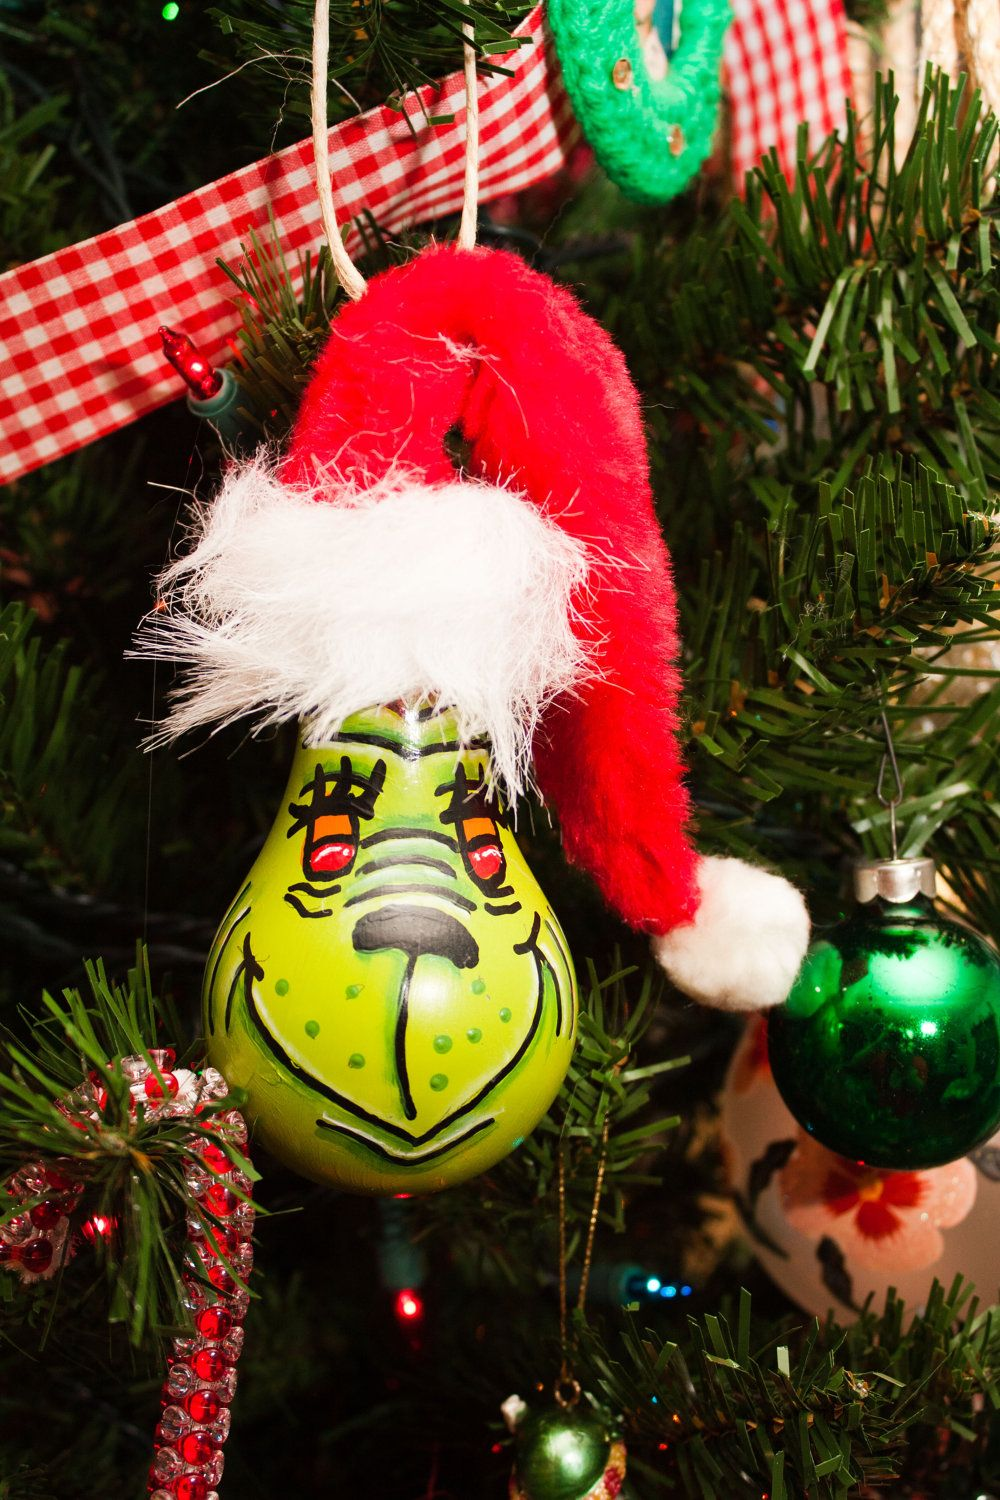 I M Generally Not A Huge Fan Of Homemade Ornaments But This Lightbulb Grinch Is Cool Light Bulb Ornaments Tea Light Crafts Christmas Crafts